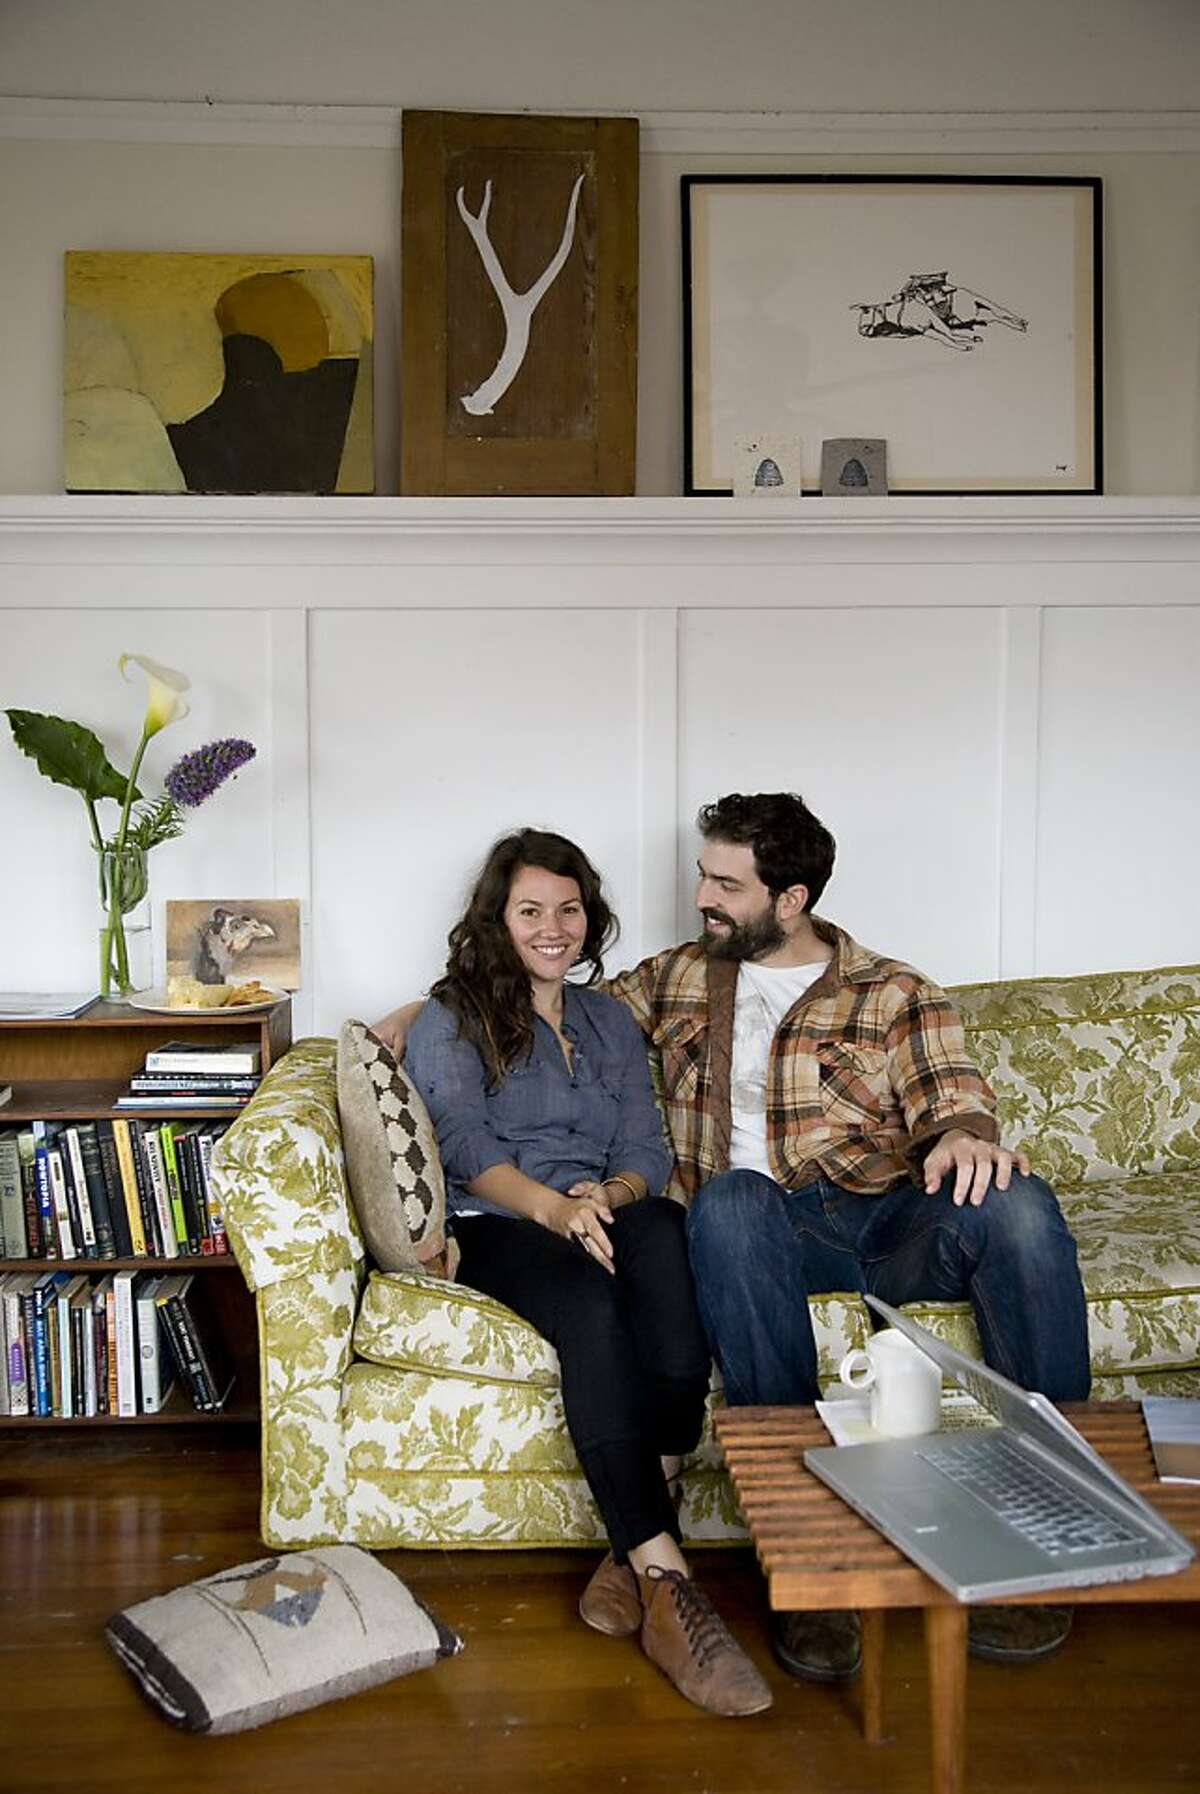 Artist and ceramicist Jessica Niello and chef Sam White sit in the living room of their homespun West Oakland retreat.